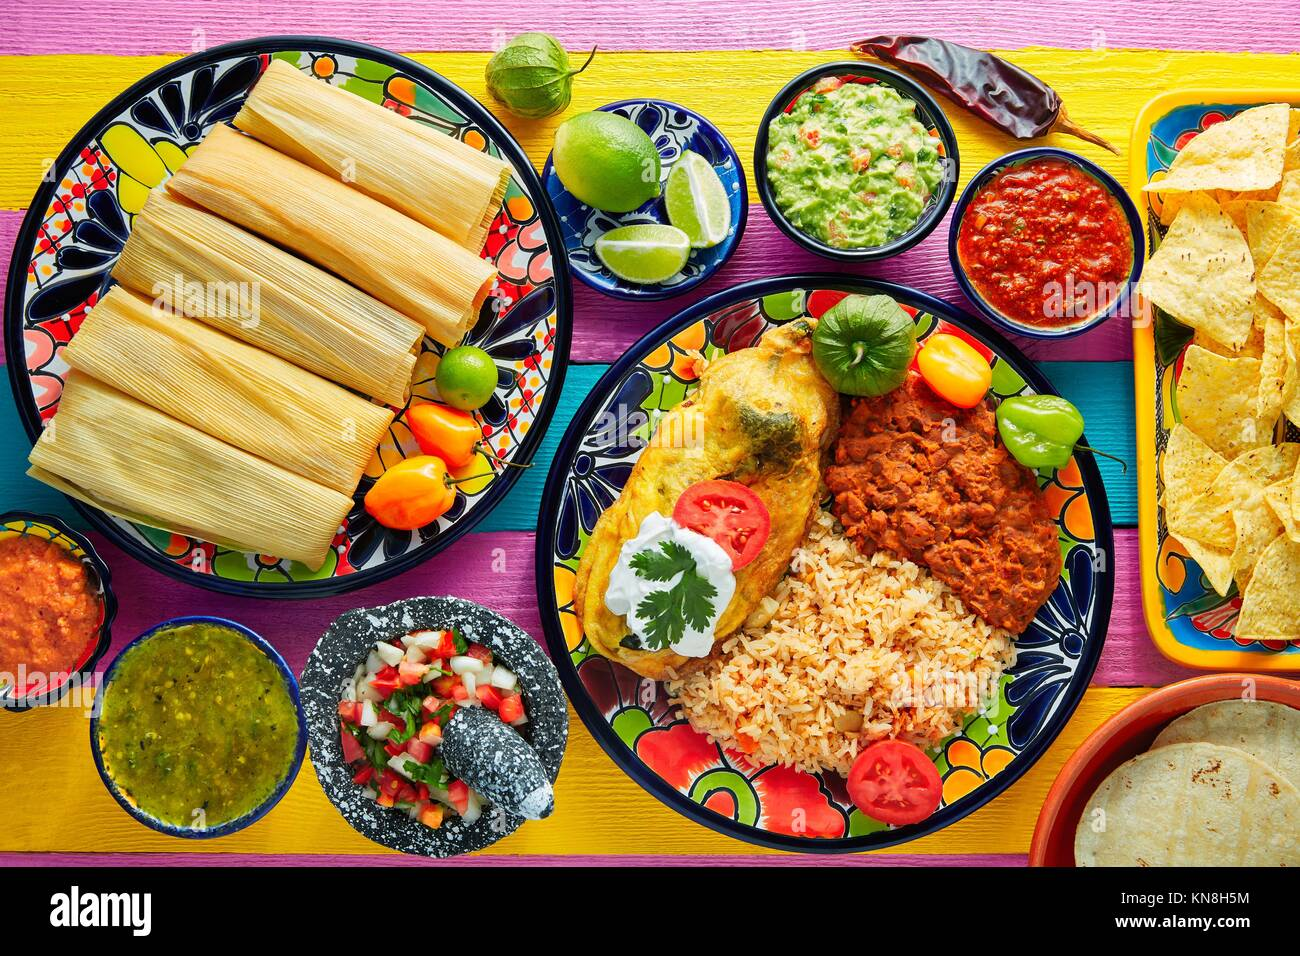 Tamale with corn leaf and filled chili pepper poblano guacamole sauces. - Stock Image